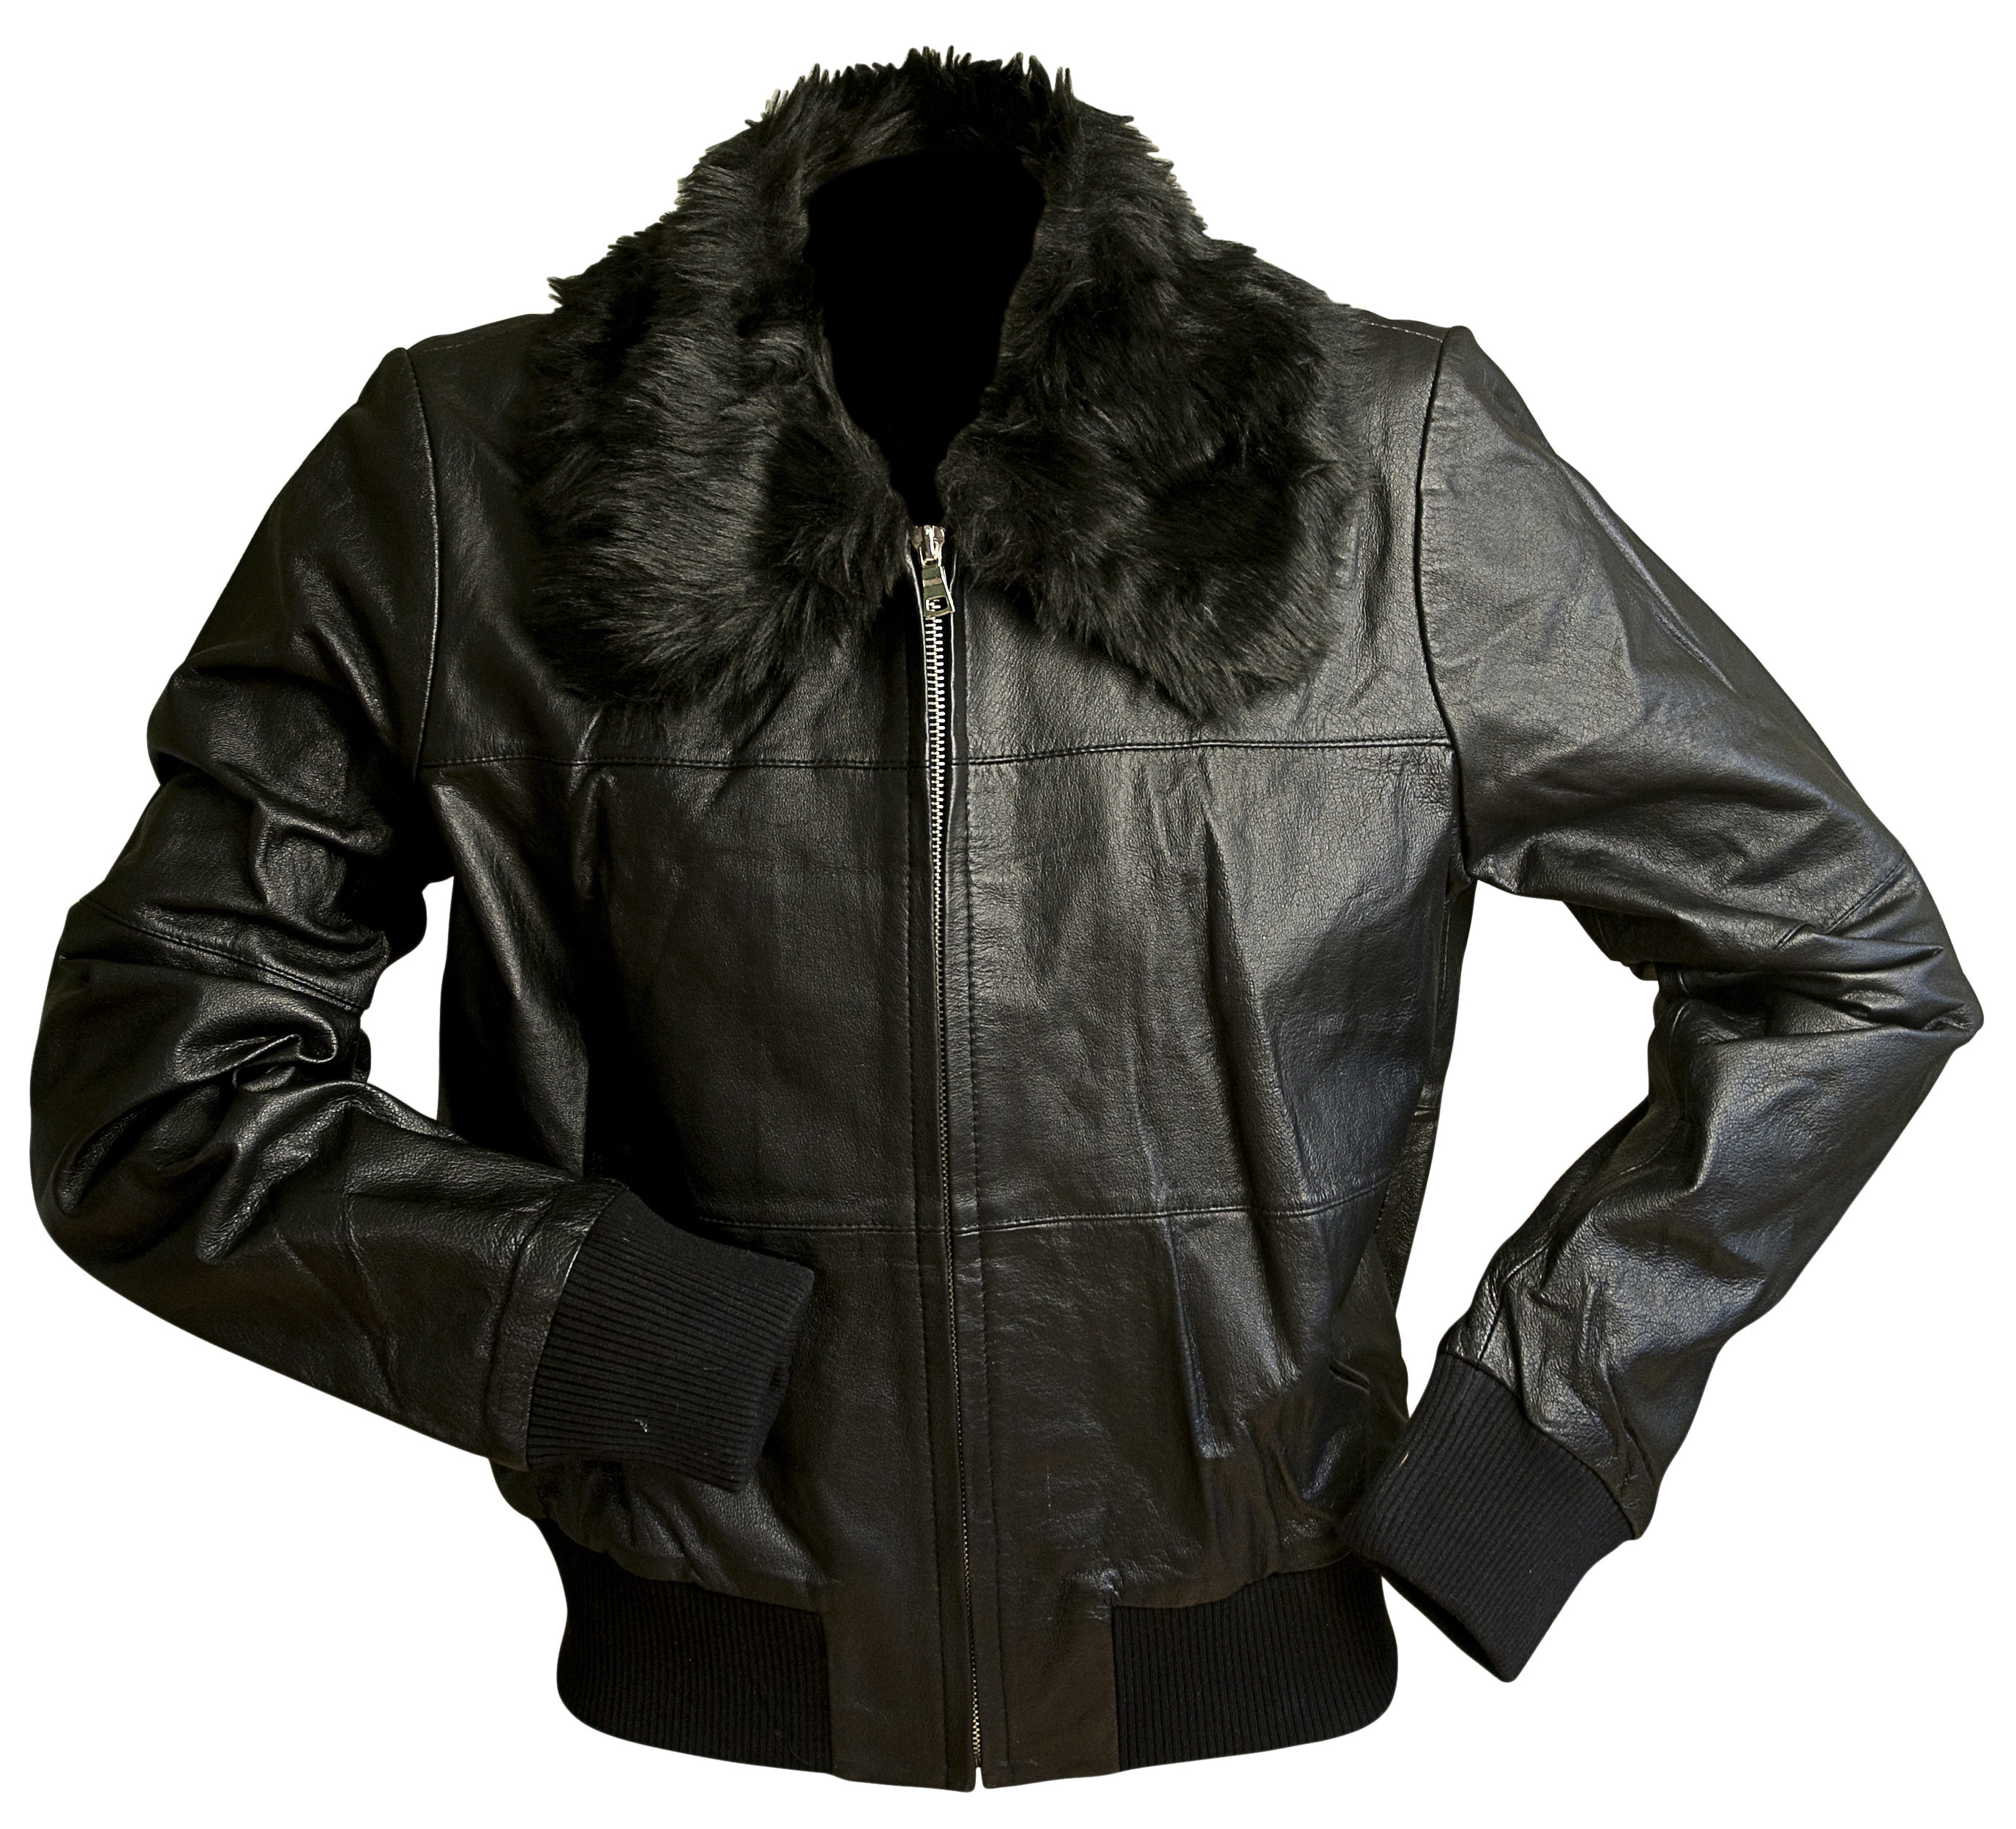 Pamela Dennis Genuine Leather Jacket with Faux Fur Collar